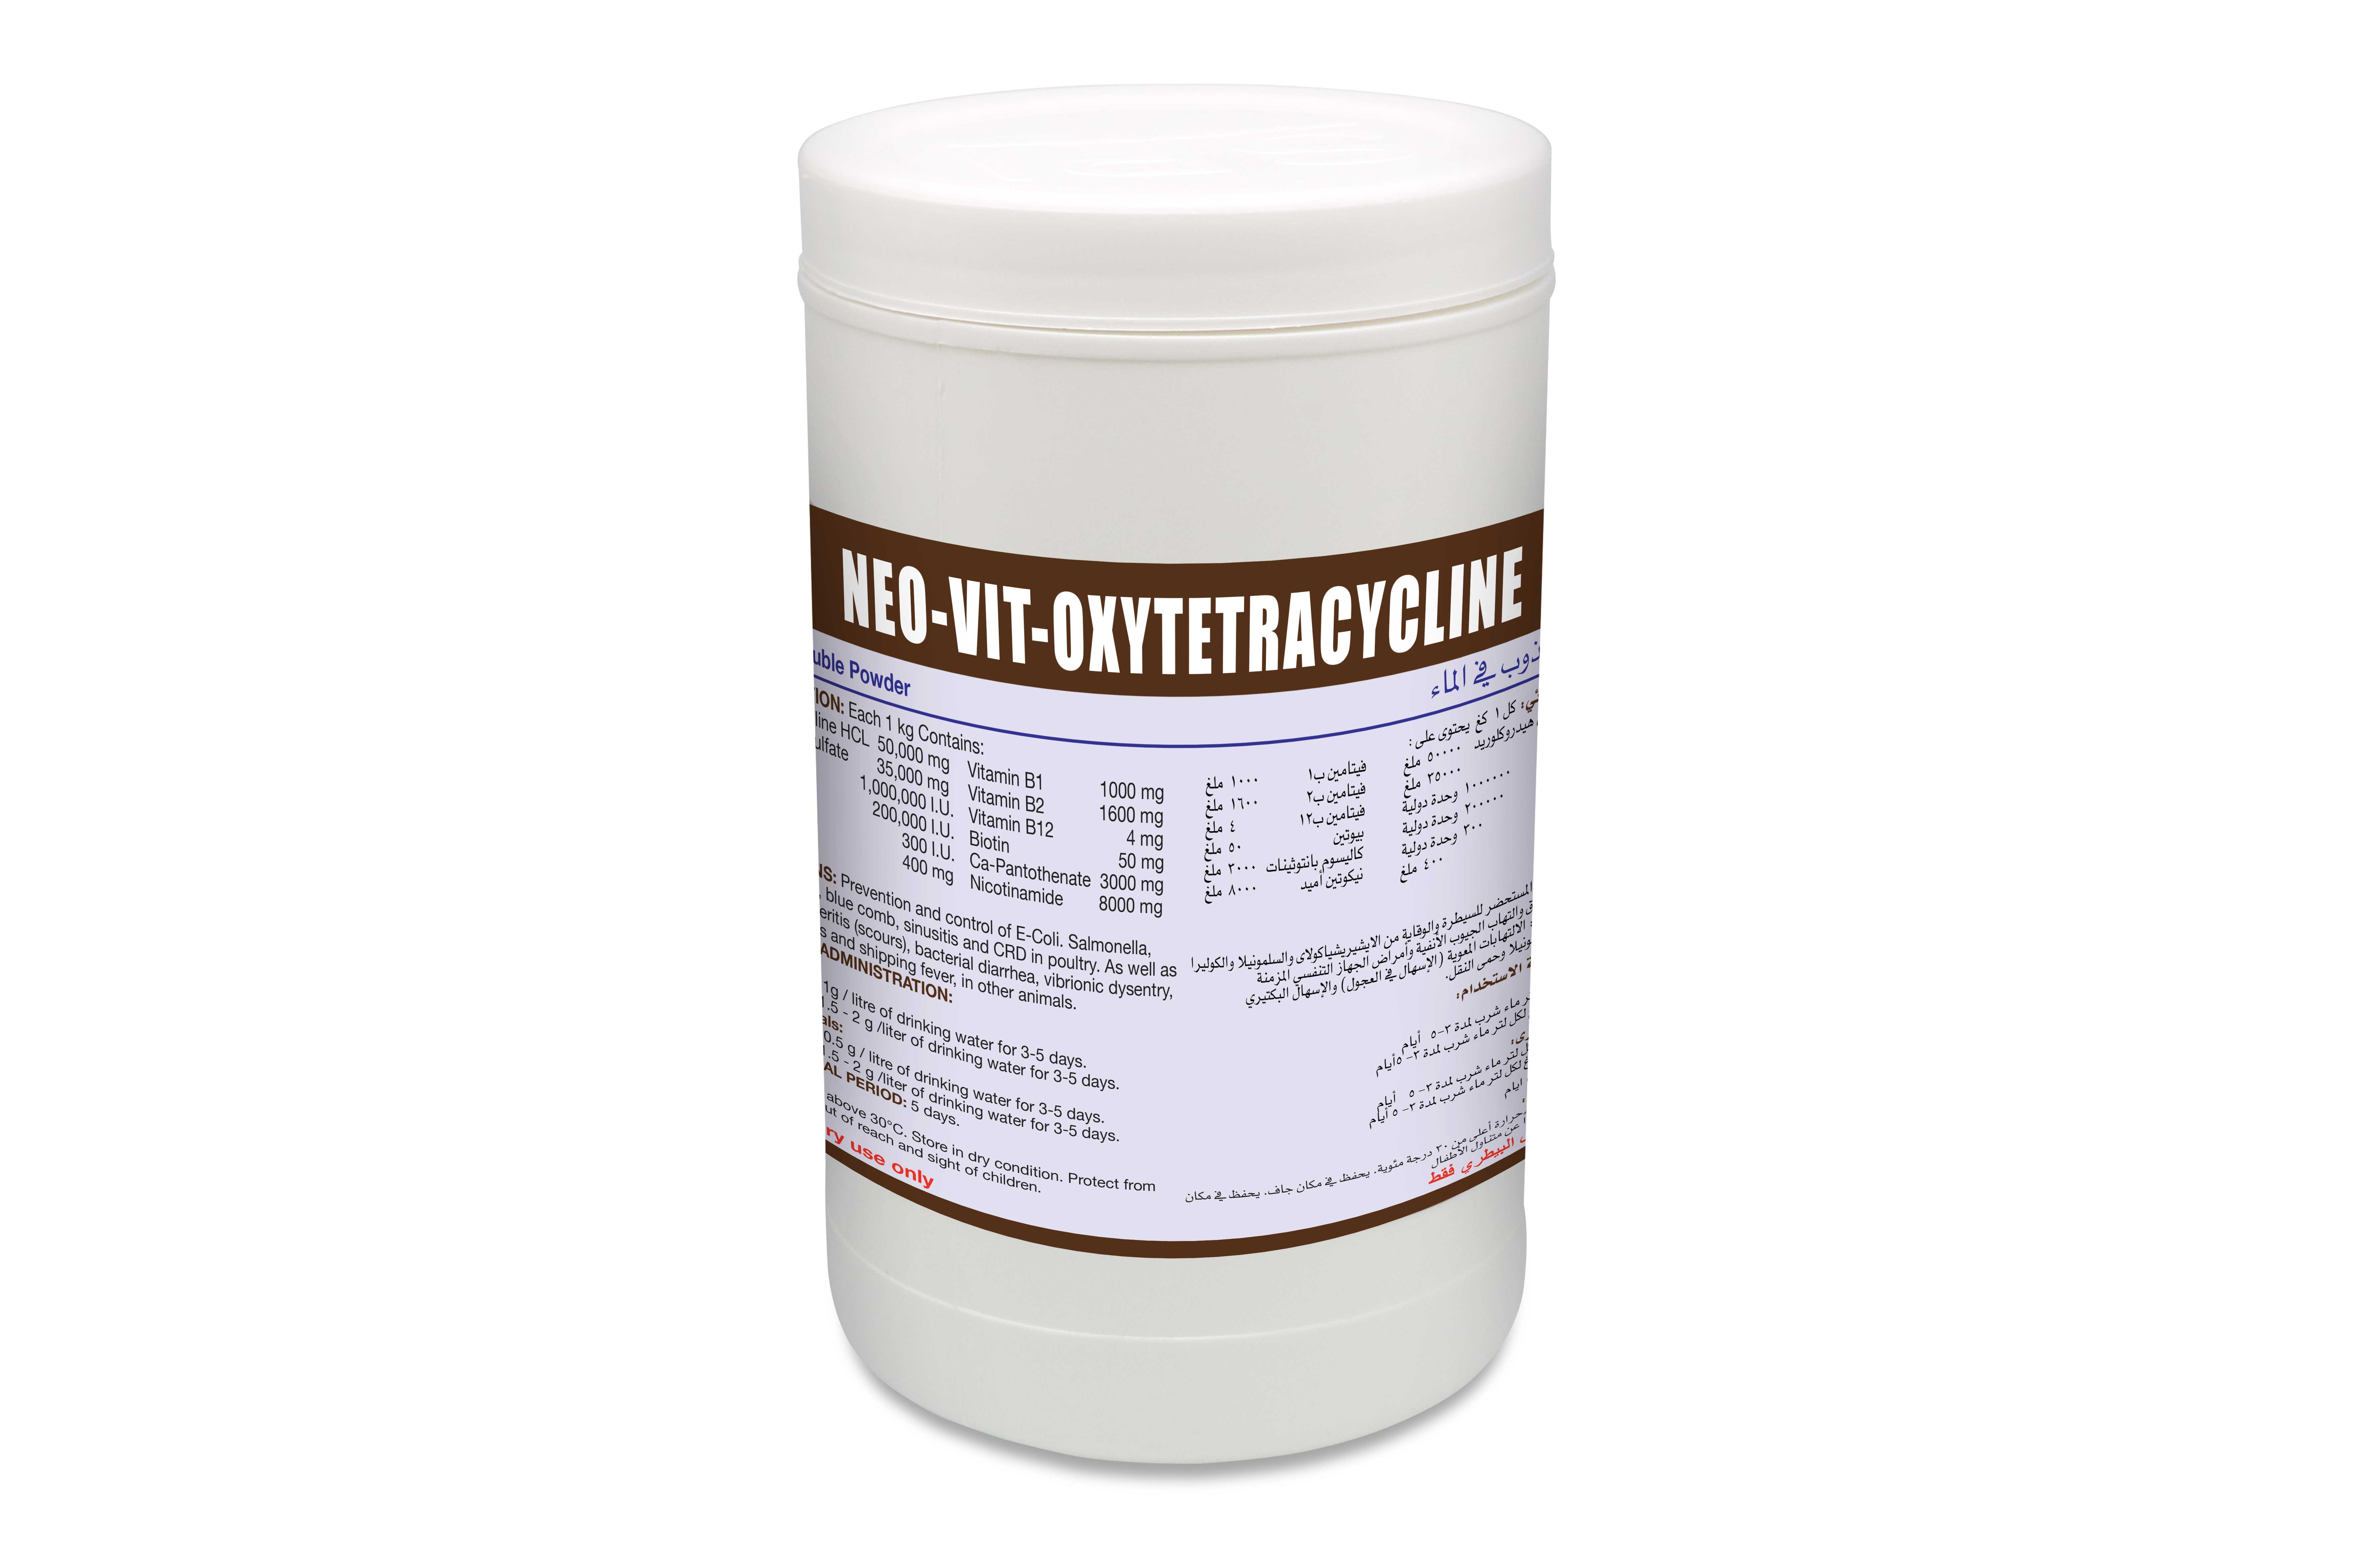 Neo-Vit-Oxytetracycline 500g